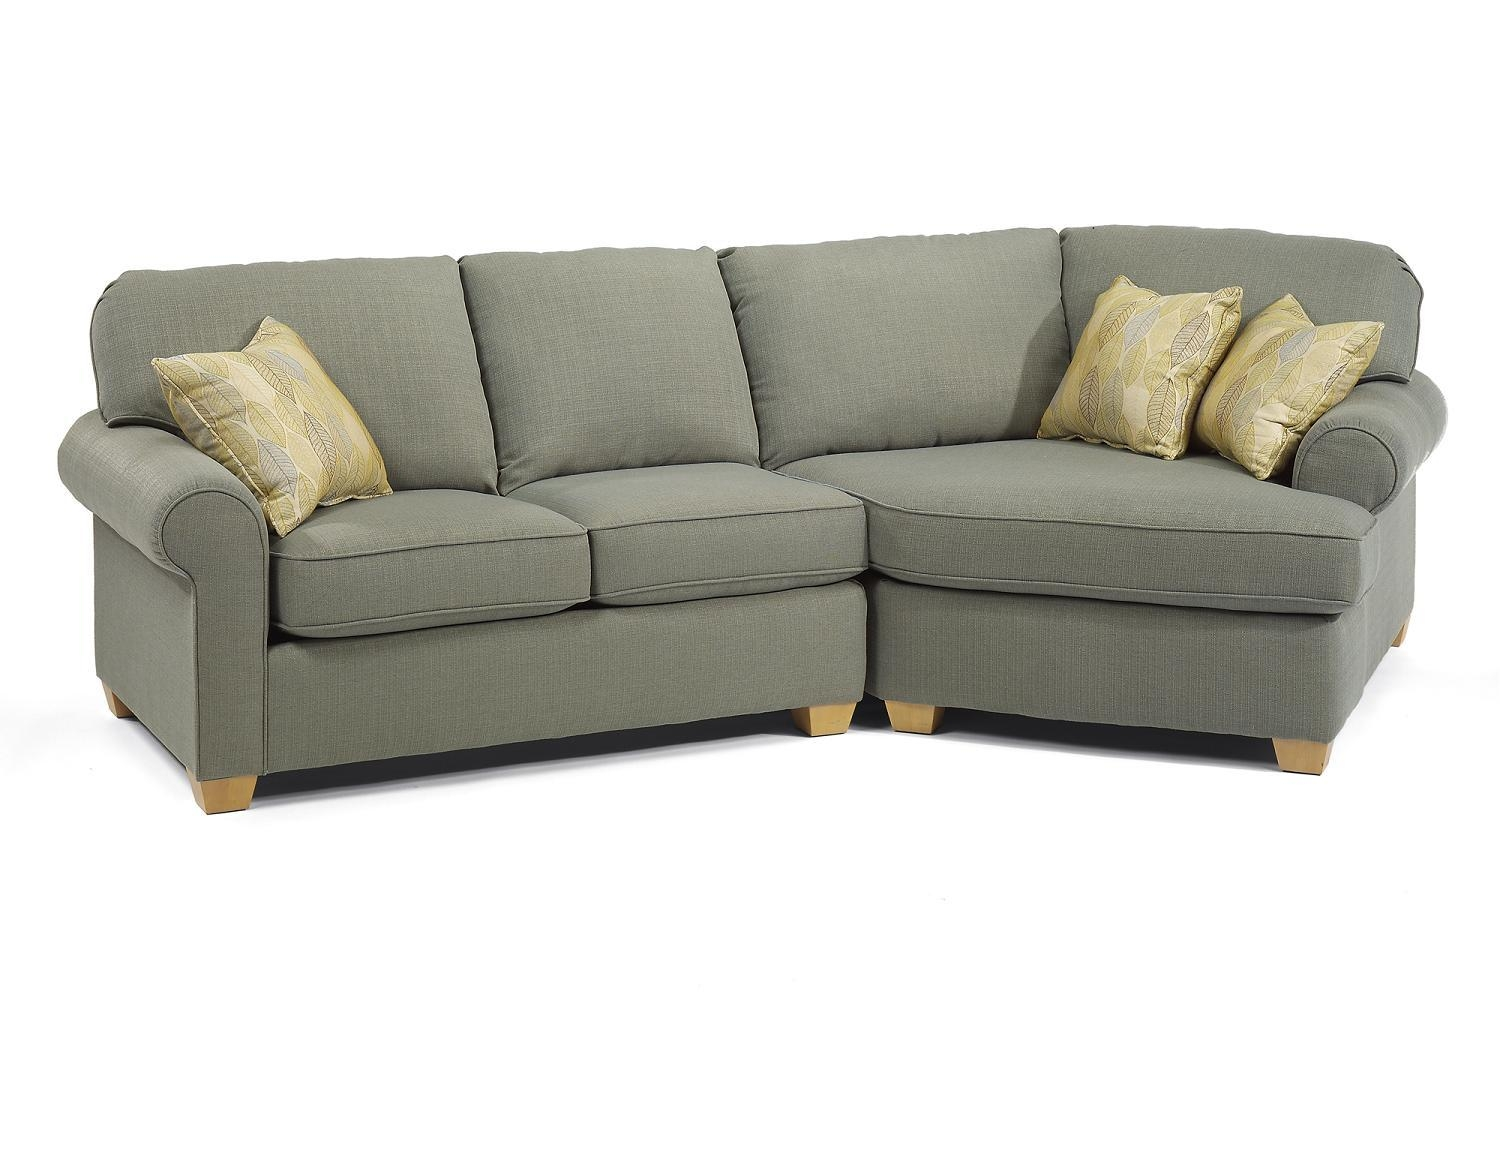 Angled Chaise Sofa – Plymouth Furniture In Angled Chaise Sofa (View 1 of 20)